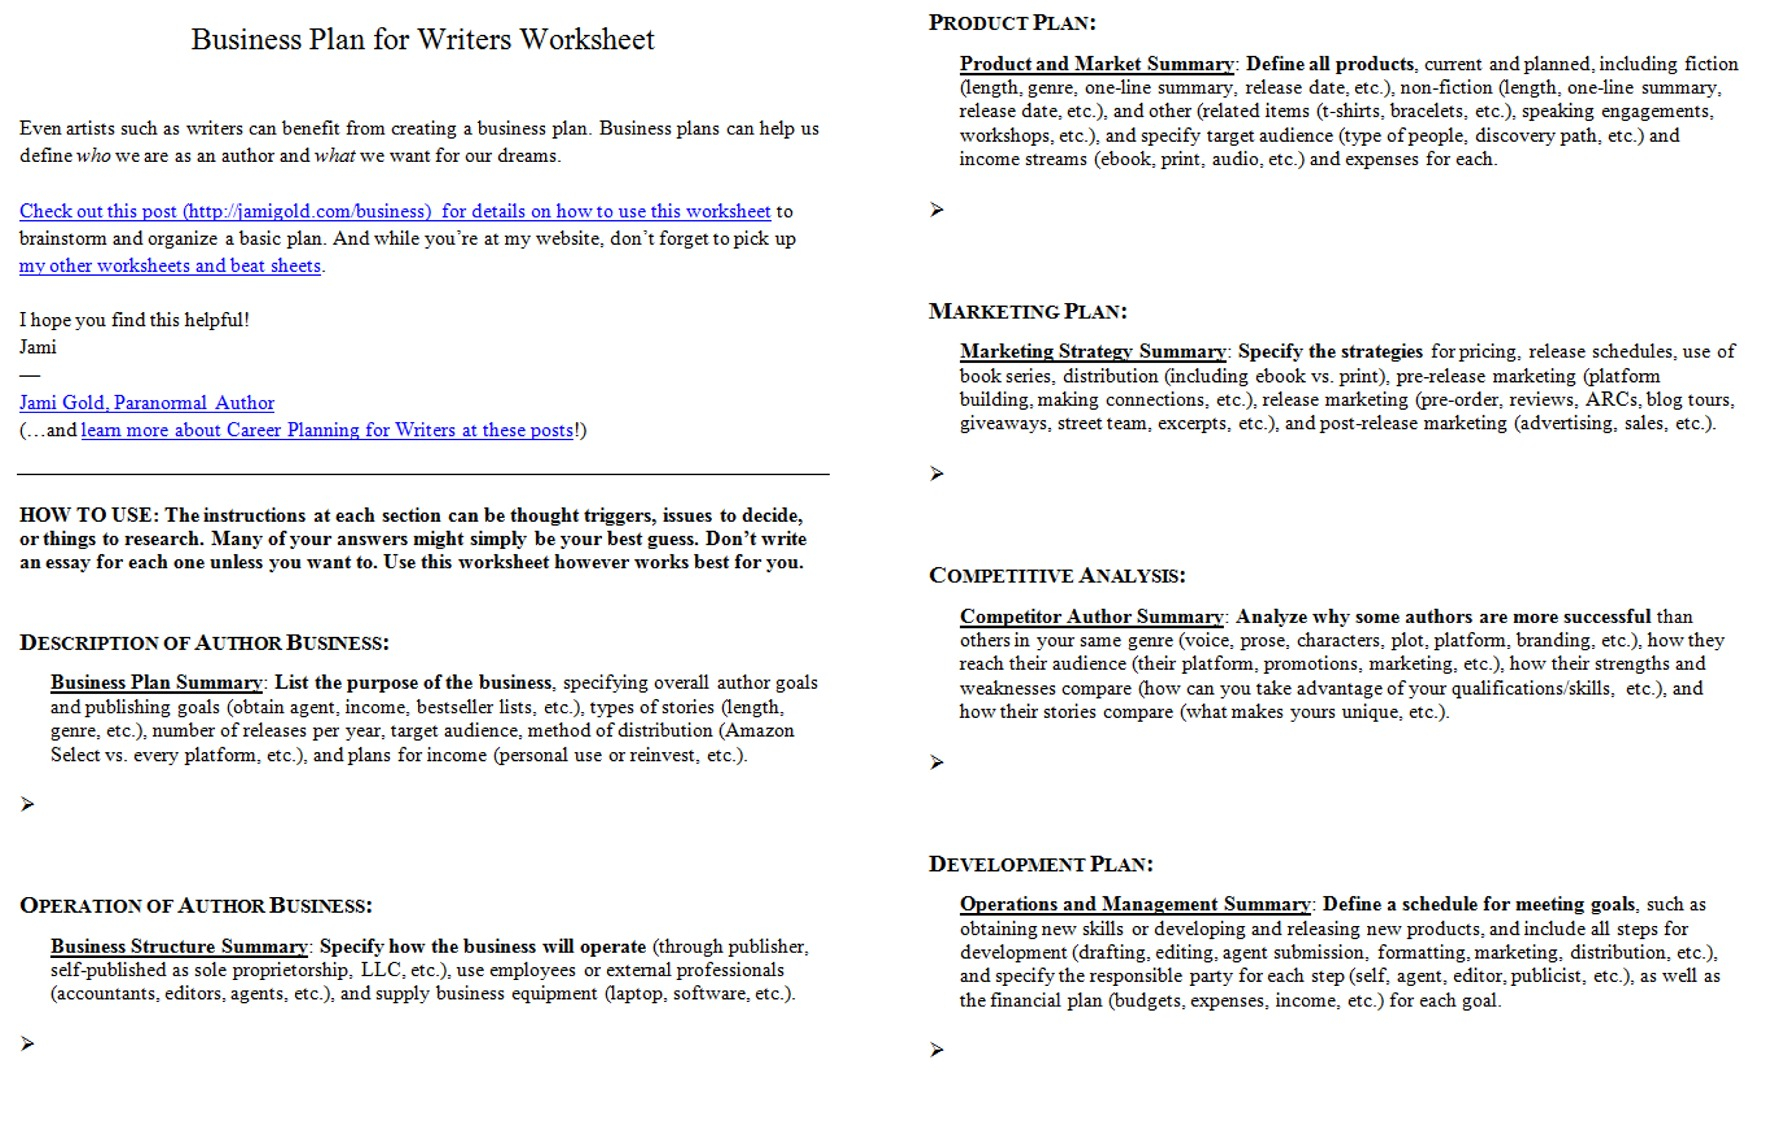 Weirdmailus  Mesmerizing Worksheets For Writers  Jami Gold Paranormal Author With Engaging Screen Shot Of Both Pages Of The Business Plan For Writers Worksheet With Delectable Worksheet Writing Ternary Formulas Also Worksheet Development Of Atomic Theory In Addition Parts Of The Violin Worksheet And Number Sense And Algebra Grade  Worksheets As Well As Og Words Worksheet Additionally  Ns  Worksheets From Jamigoldcom With Weirdmailus  Engaging Worksheets For Writers  Jami Gold Paranormal Author With Delectable Screen Shot Of Both Pages Of The Business Plan For Writers Worksheet And Mesmerizing Worksheet Writing Ternary Formulas Also Worksheet Development Of Atomic Theory In Addition Parts Of The Violin Worksheet From Jamigoldcom